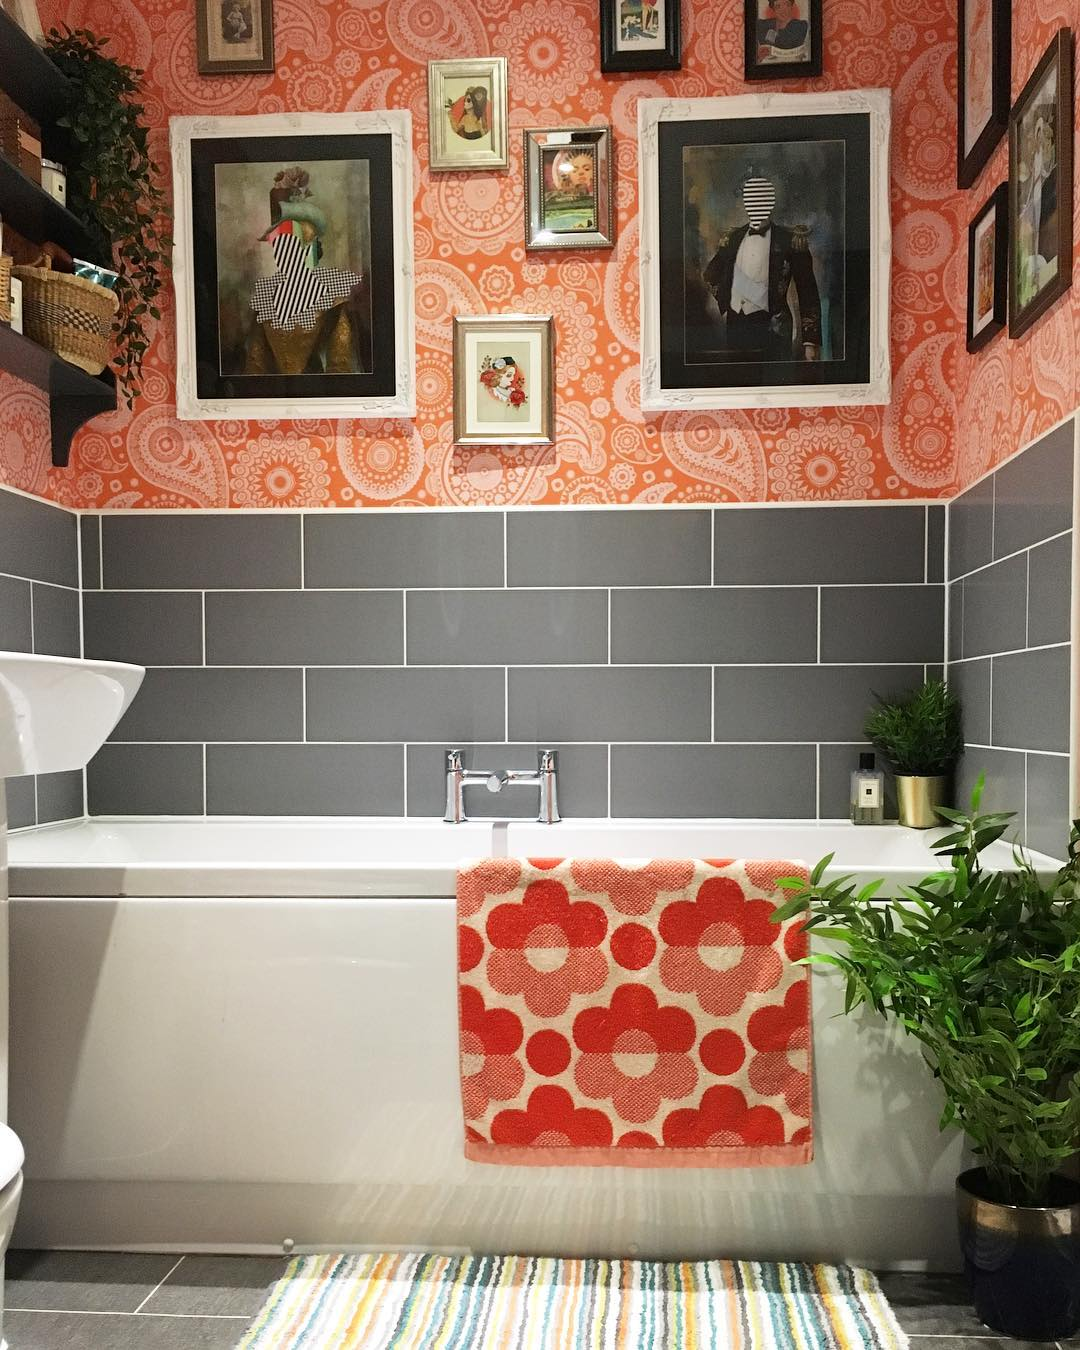 Colorful ensuite in grey tile and orange wallpaper. This is not your average magnolia new build. www.lovetohome.co.uk Photo credit: @projecthomedesign via Instagram